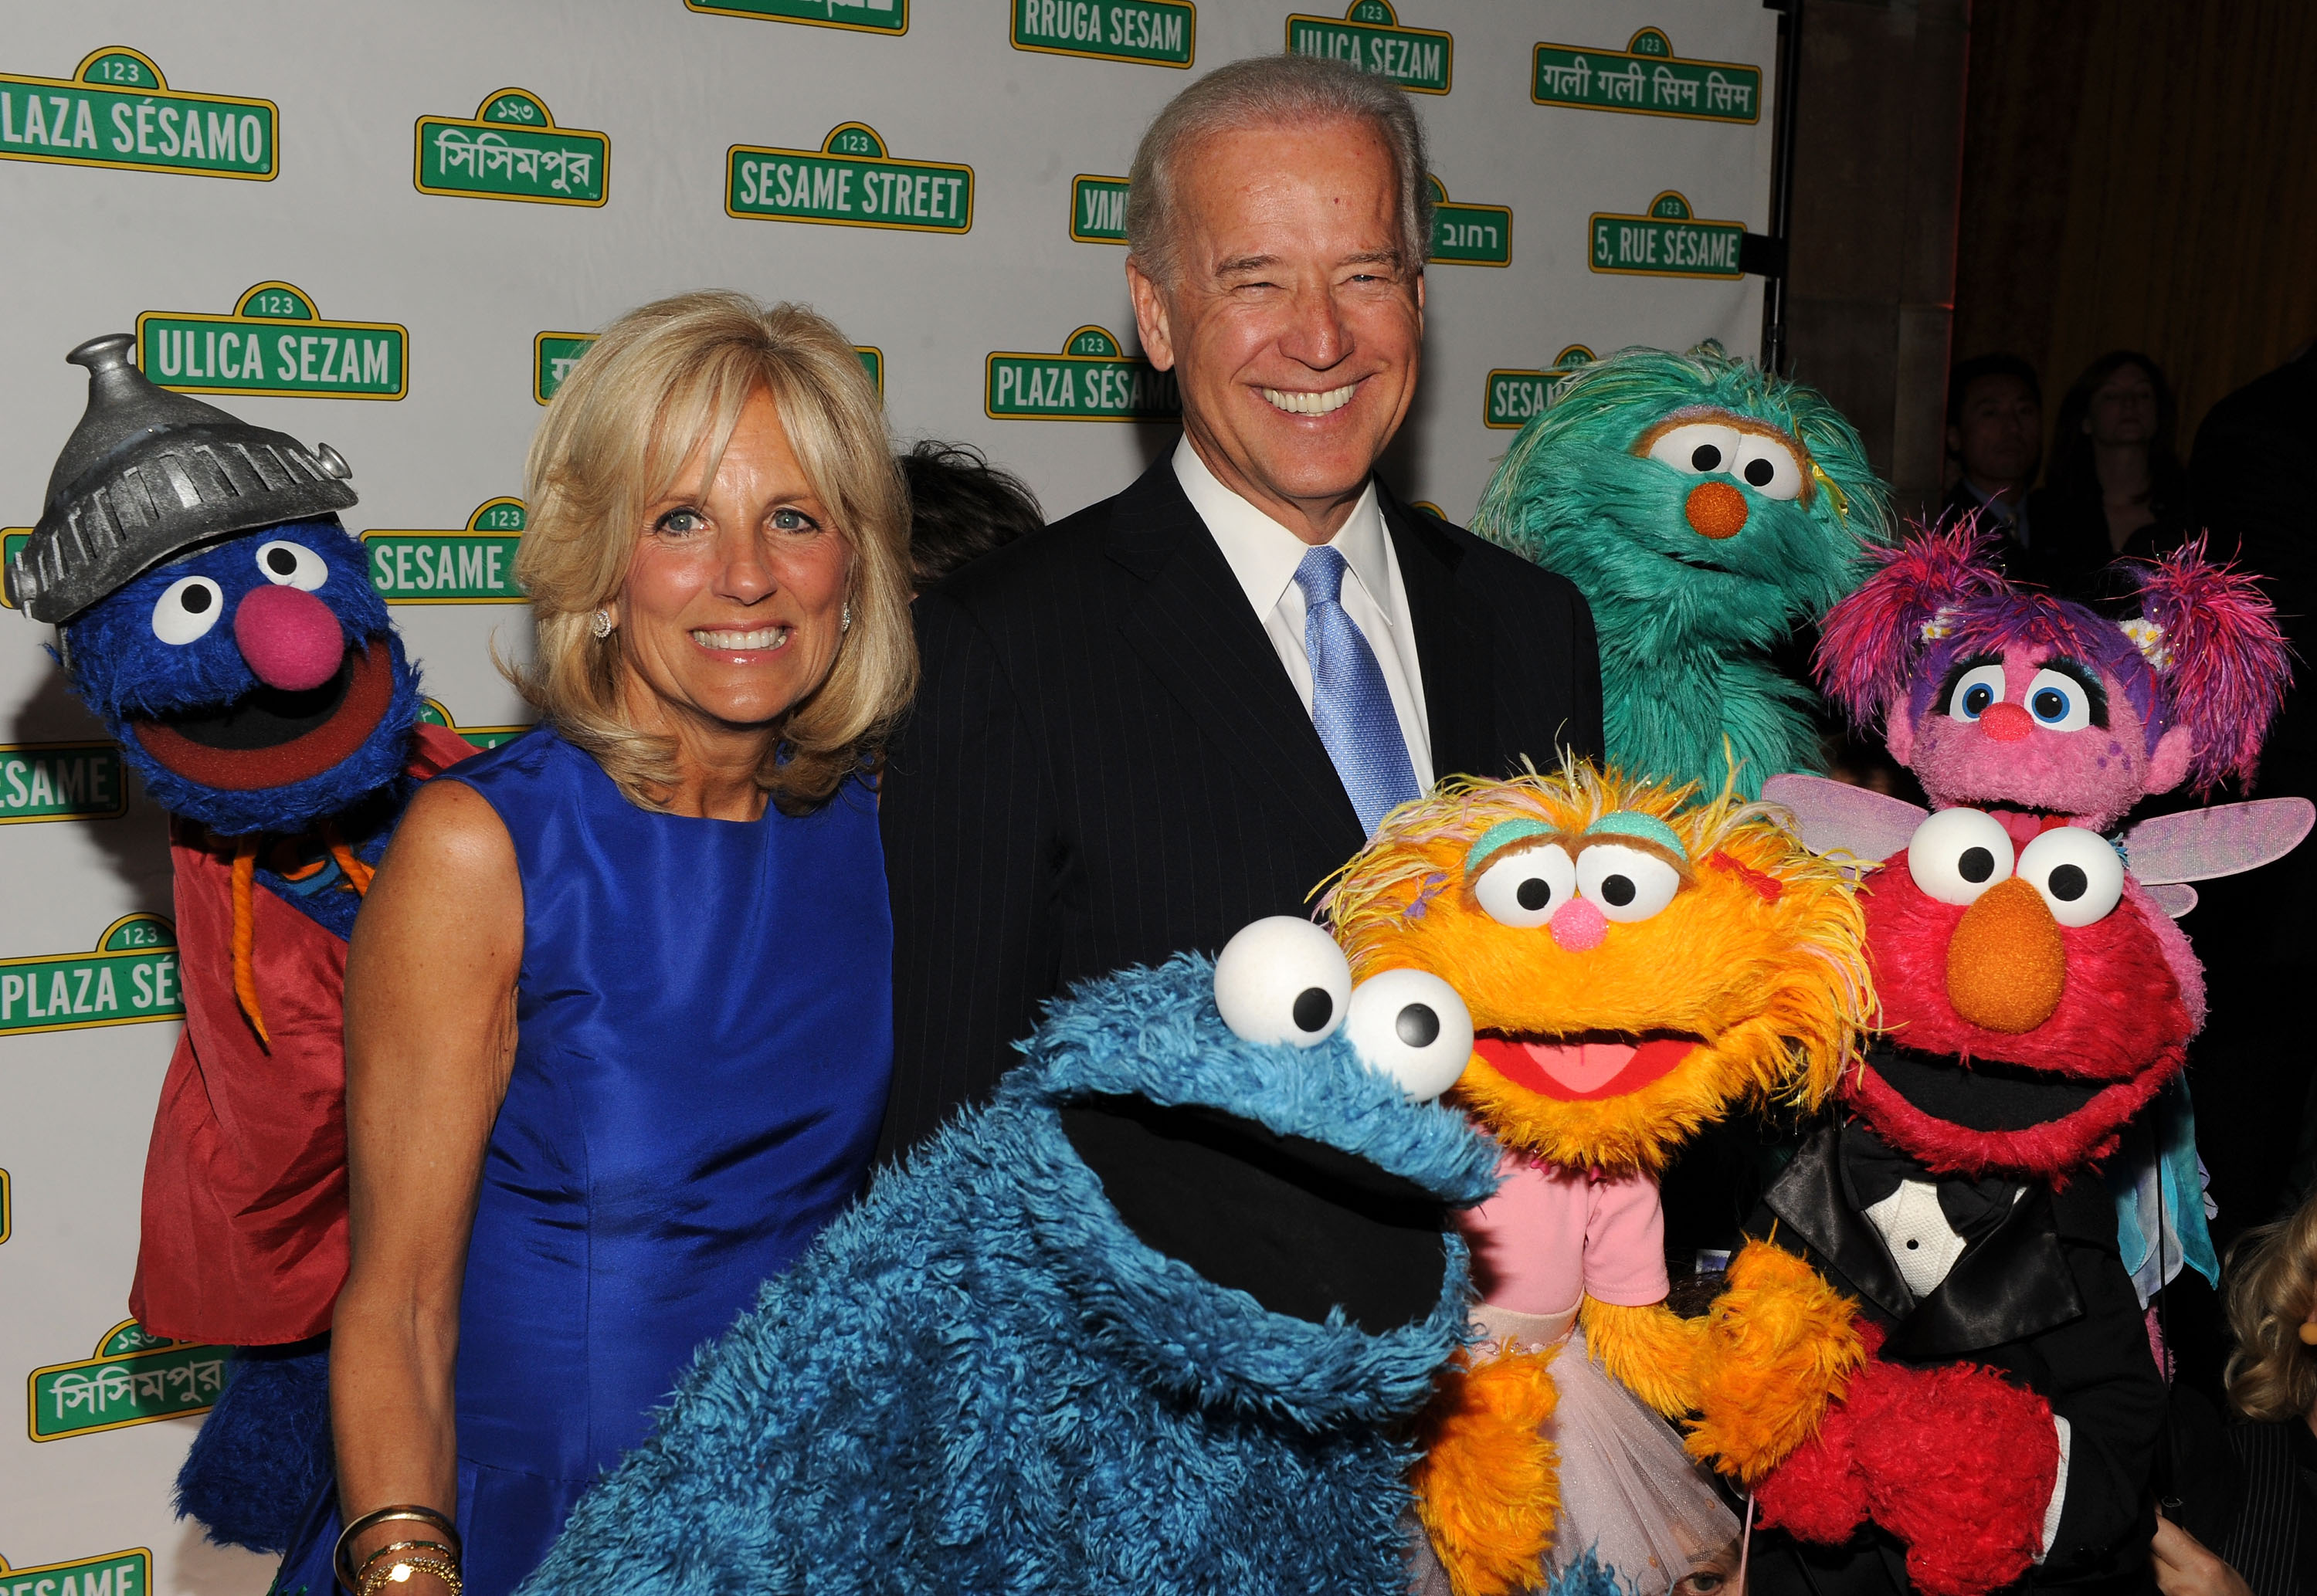 Vice President Joe Biden and Dr. Jill Biden attend Sesame Workshop's 8th Annual Benefit Gala in New York City. (Photo by Bryan Bedder/Getty Images)